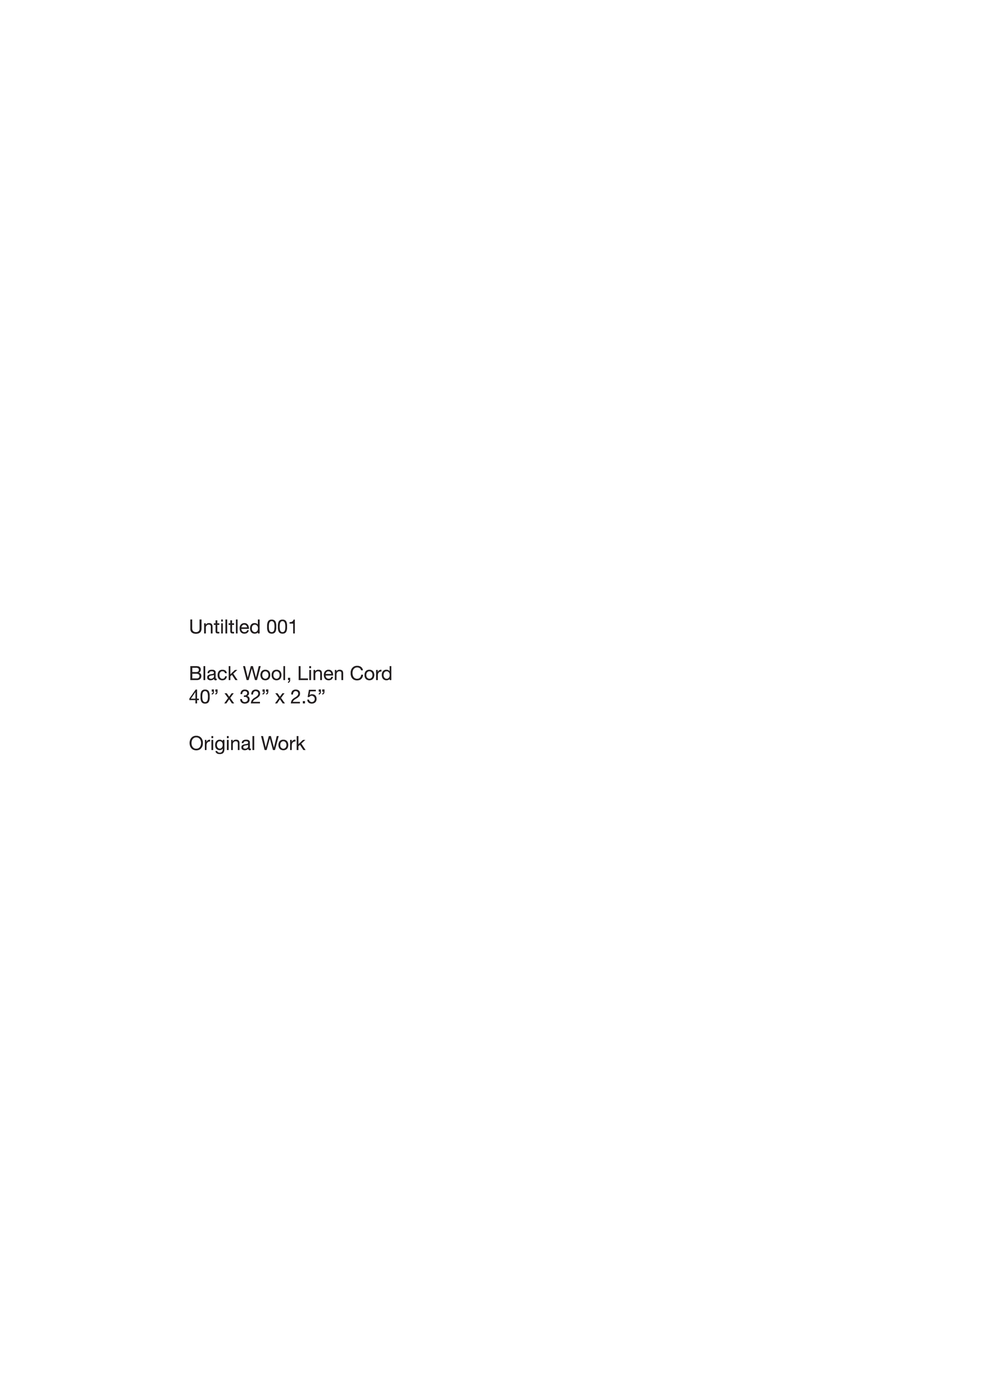 Nicole Patel Wool 001 Text-01.png